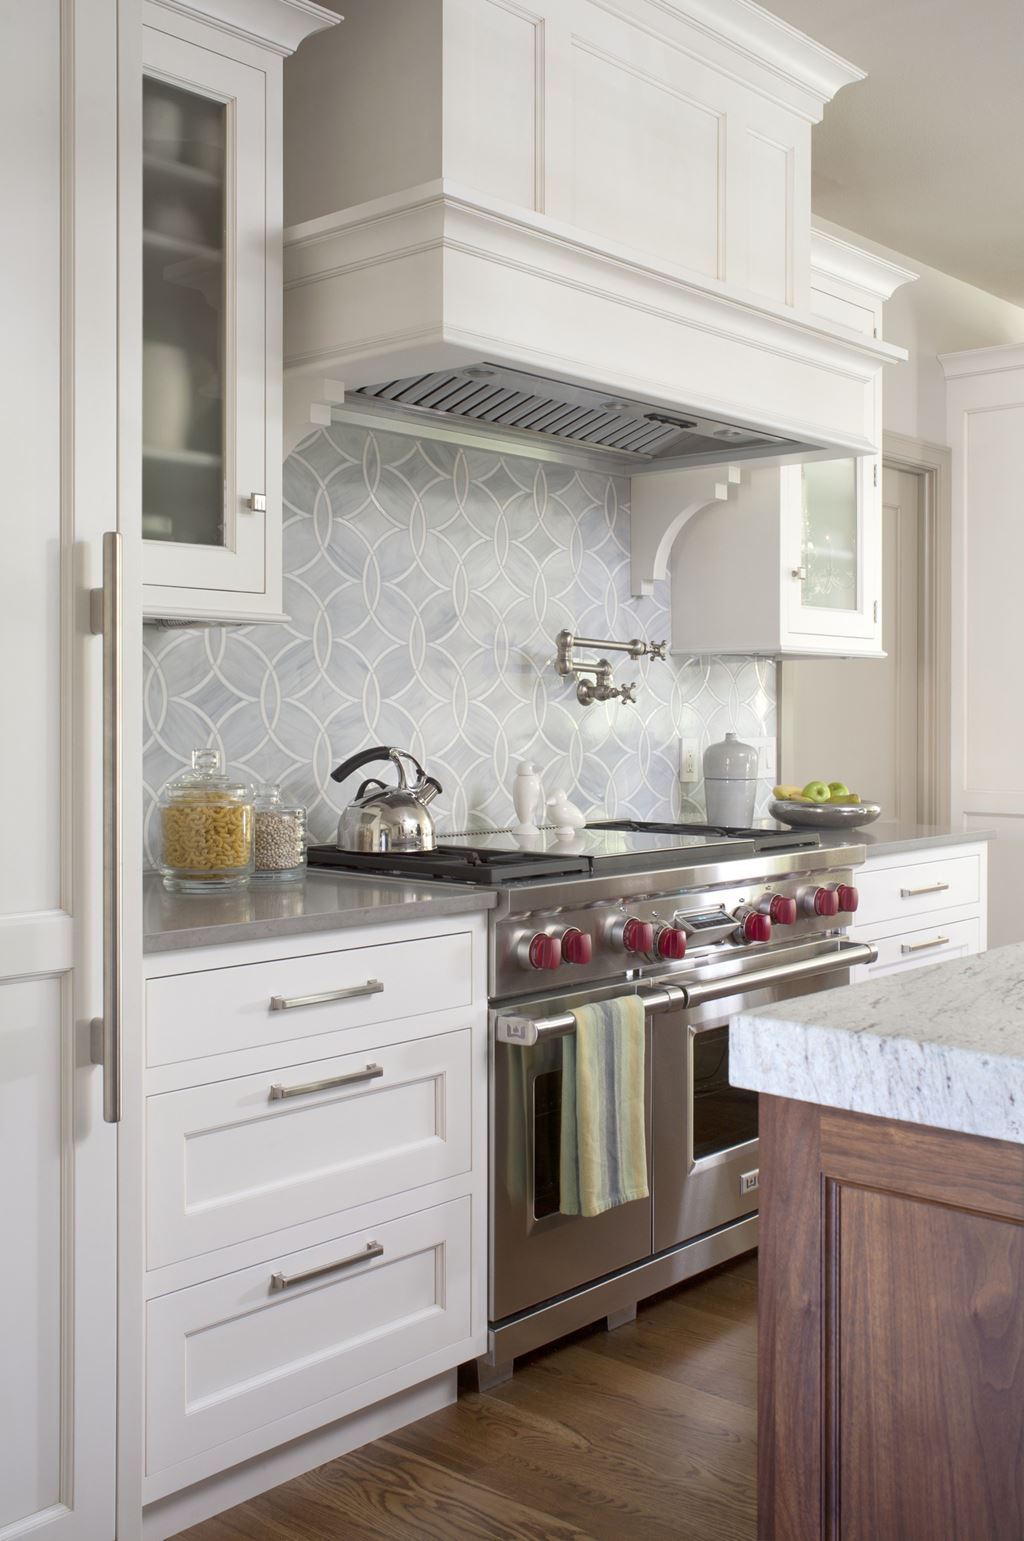 Misty Blue | Sub-Zero, Wolf, and Cove Kitchens